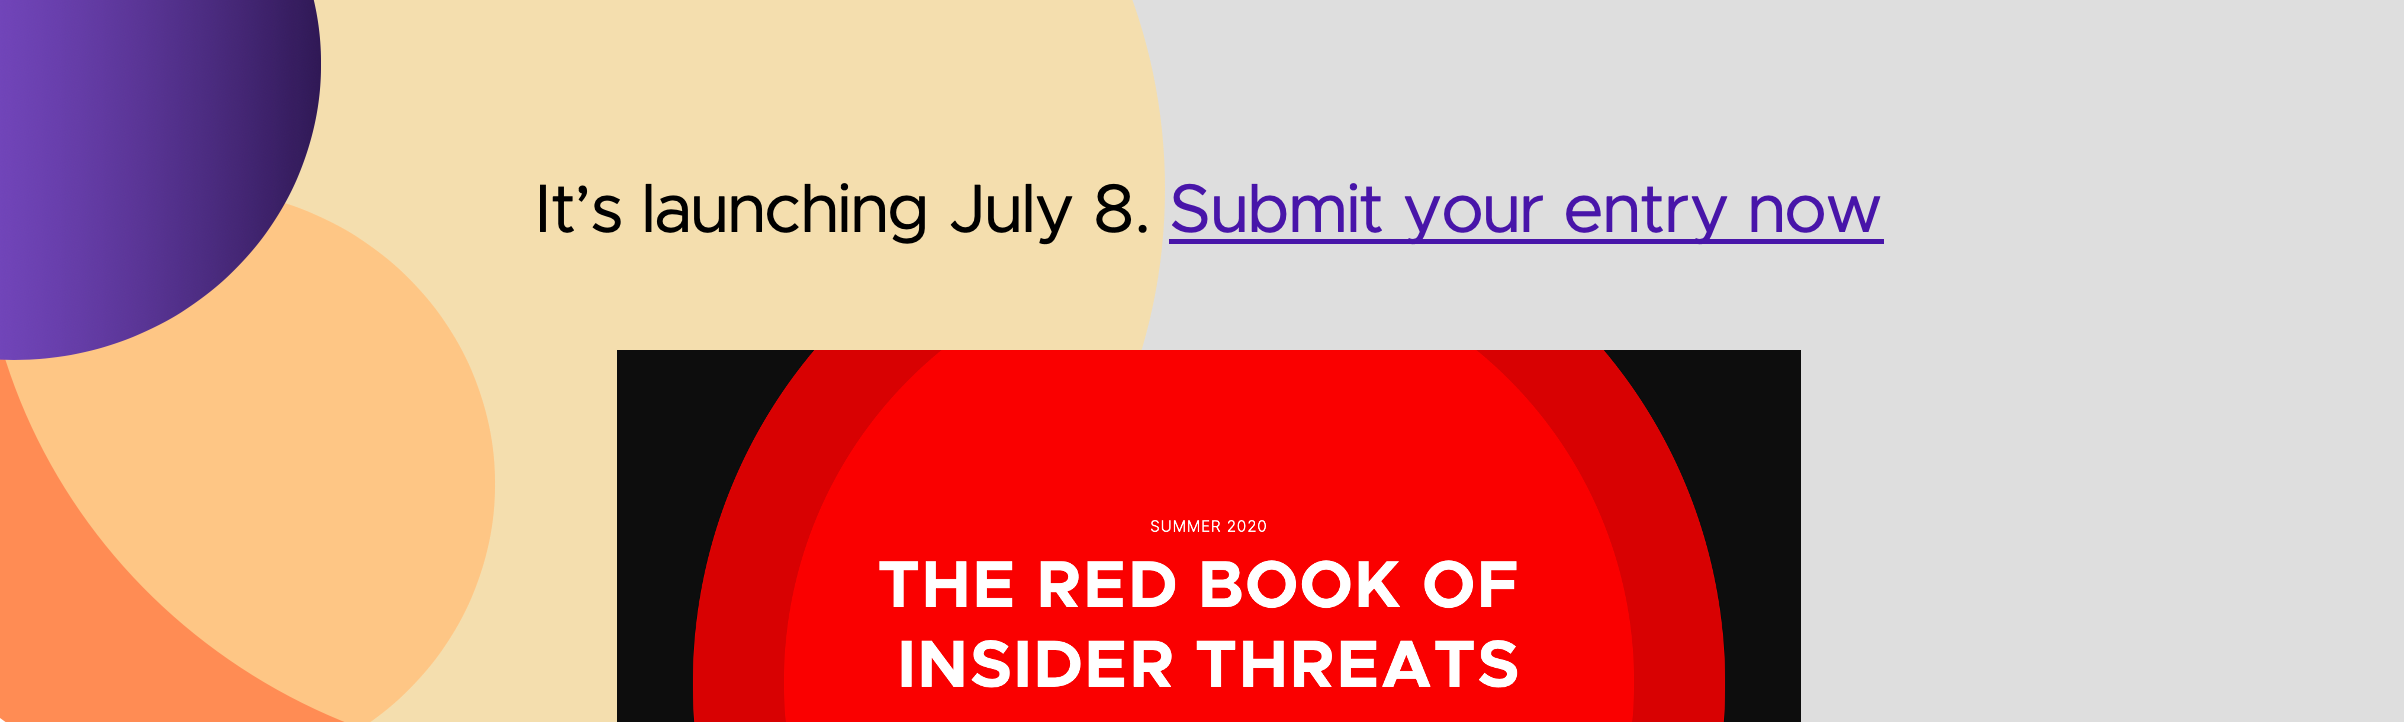 dasera-red-book-insider-threats-submit-entry